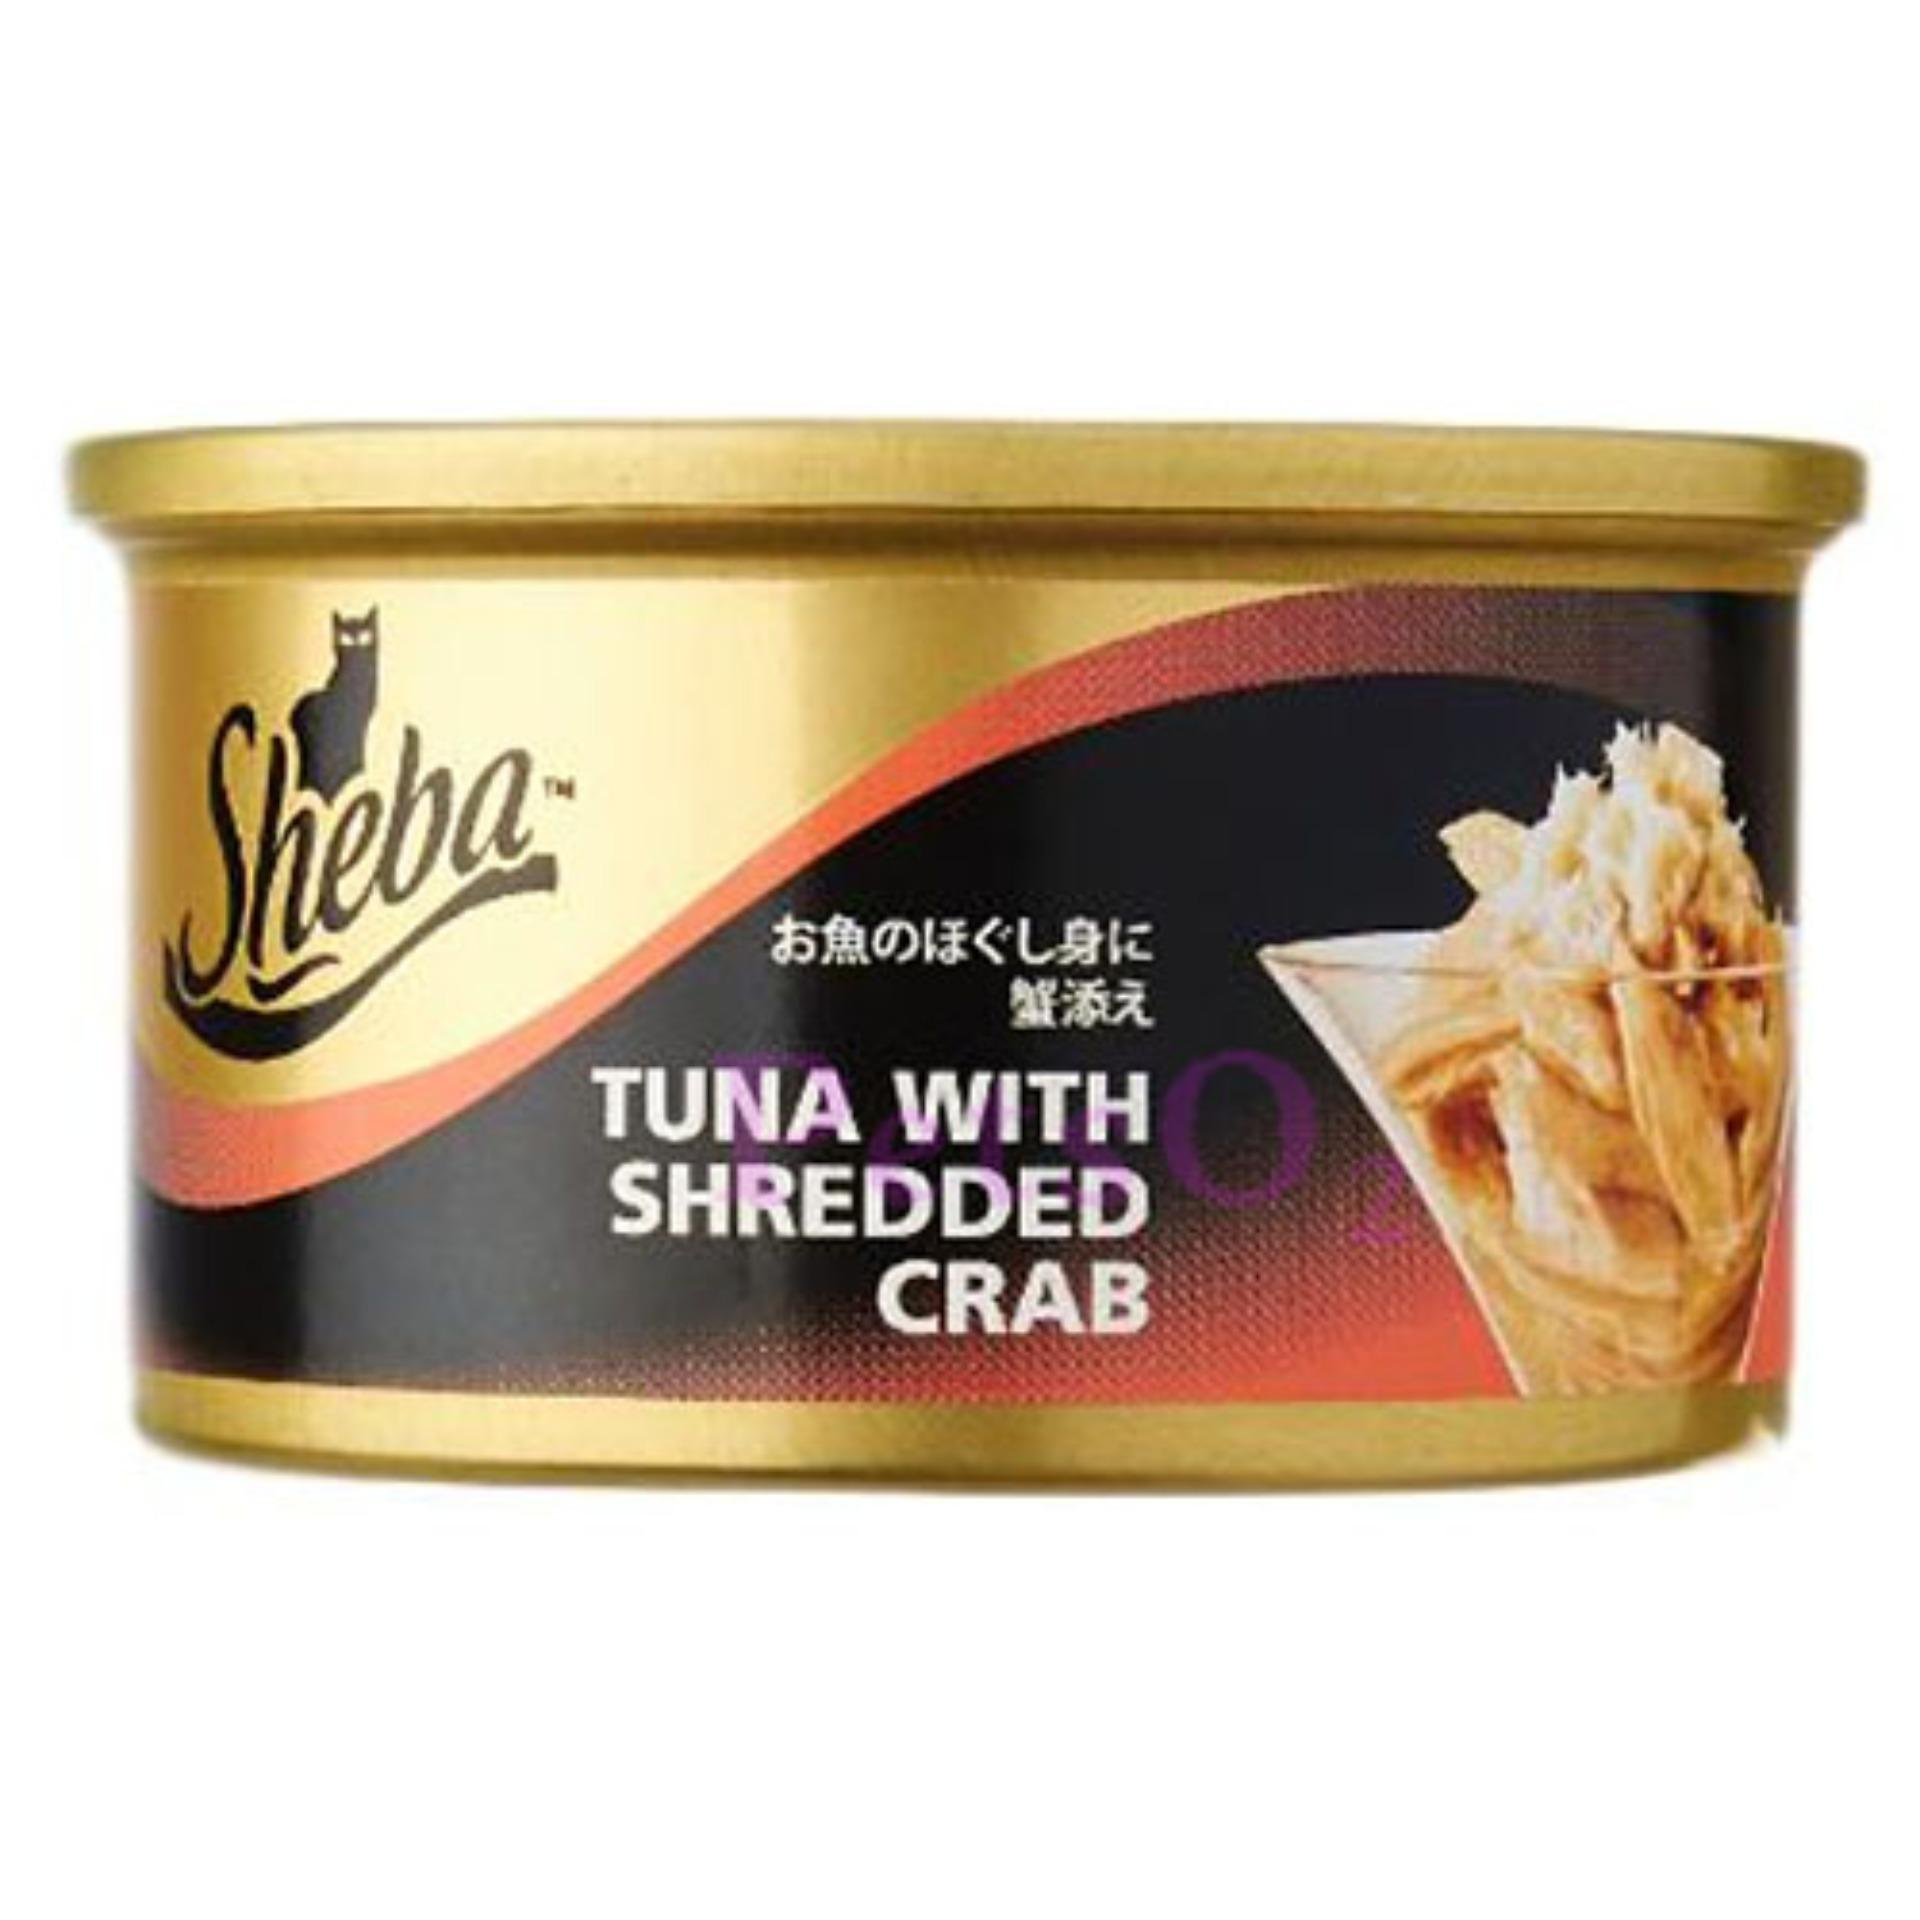 Retail Sheba Tuna With Shredded Crab 85G X24 Cans